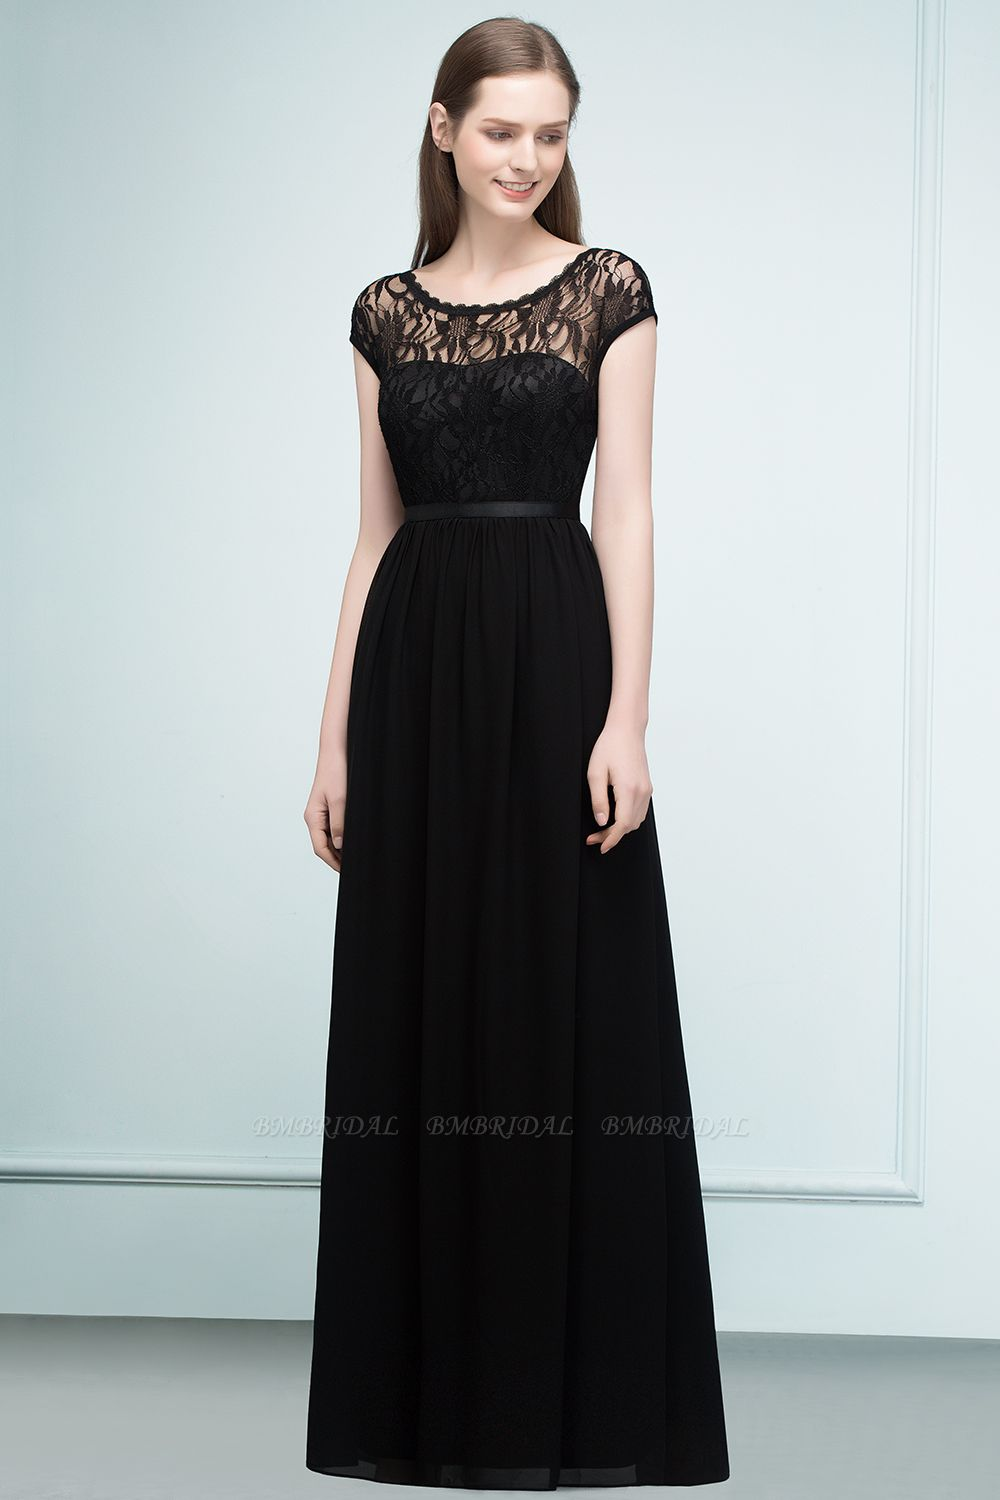 Affordable A-line Short-Sleeves Black Lace Bridesmaid Dress with Sash In Stock